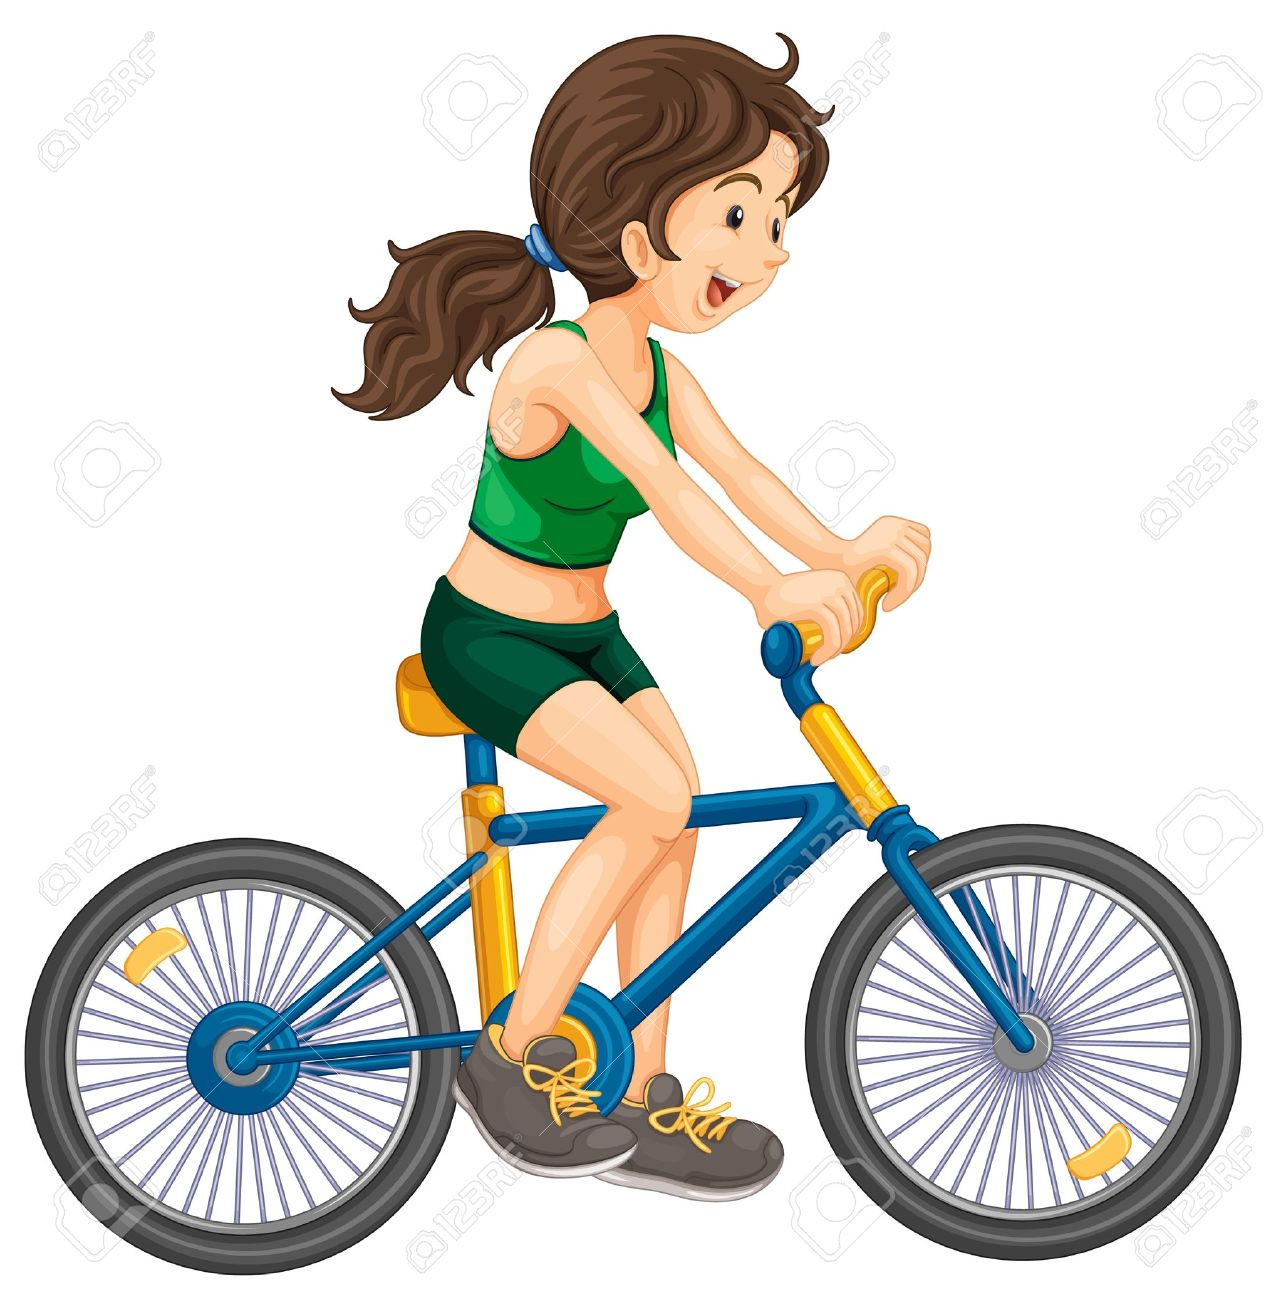 Female Biking Clipart.